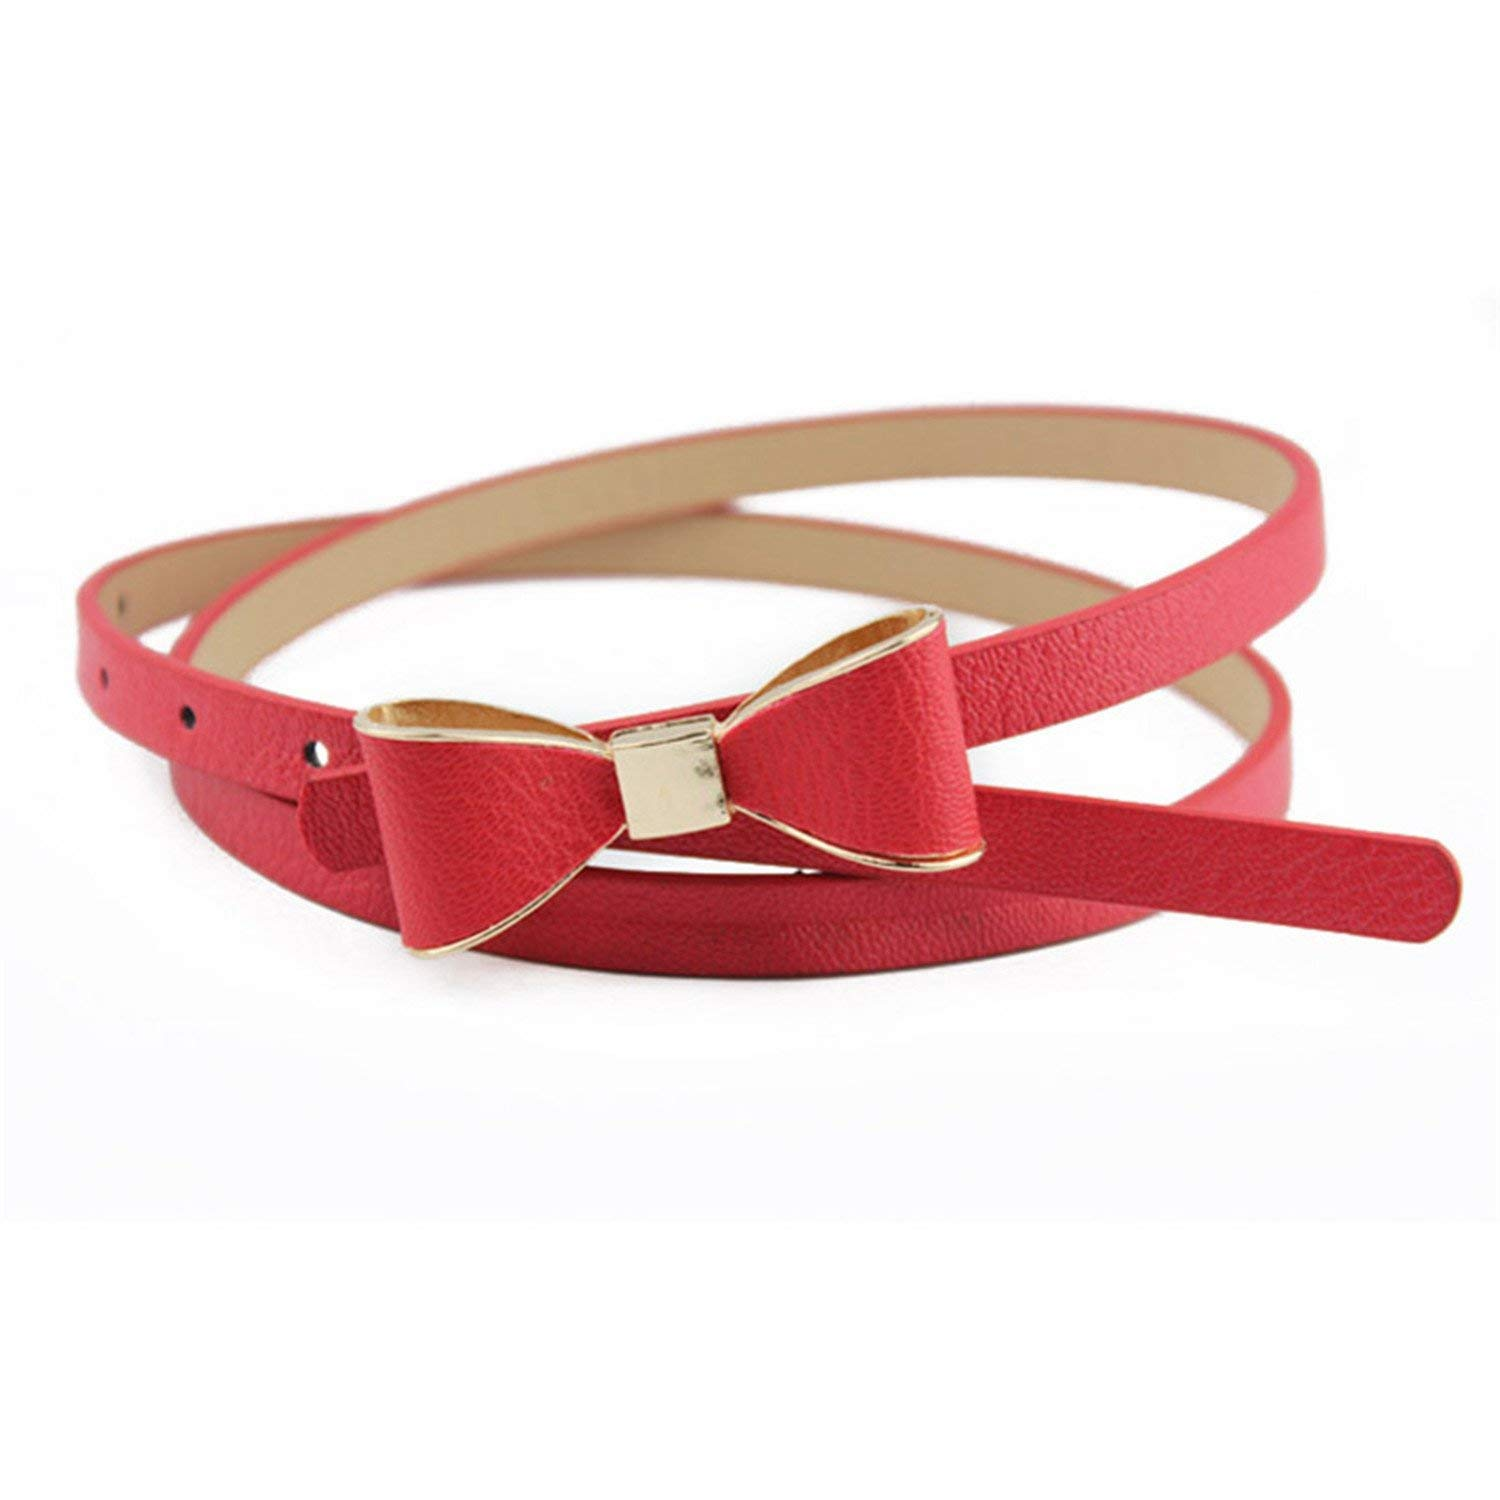 LeNG Fashion Candy Color Belt Bow Belt For Women Female Automatic Buckle Waist Strap,OneSize,Red